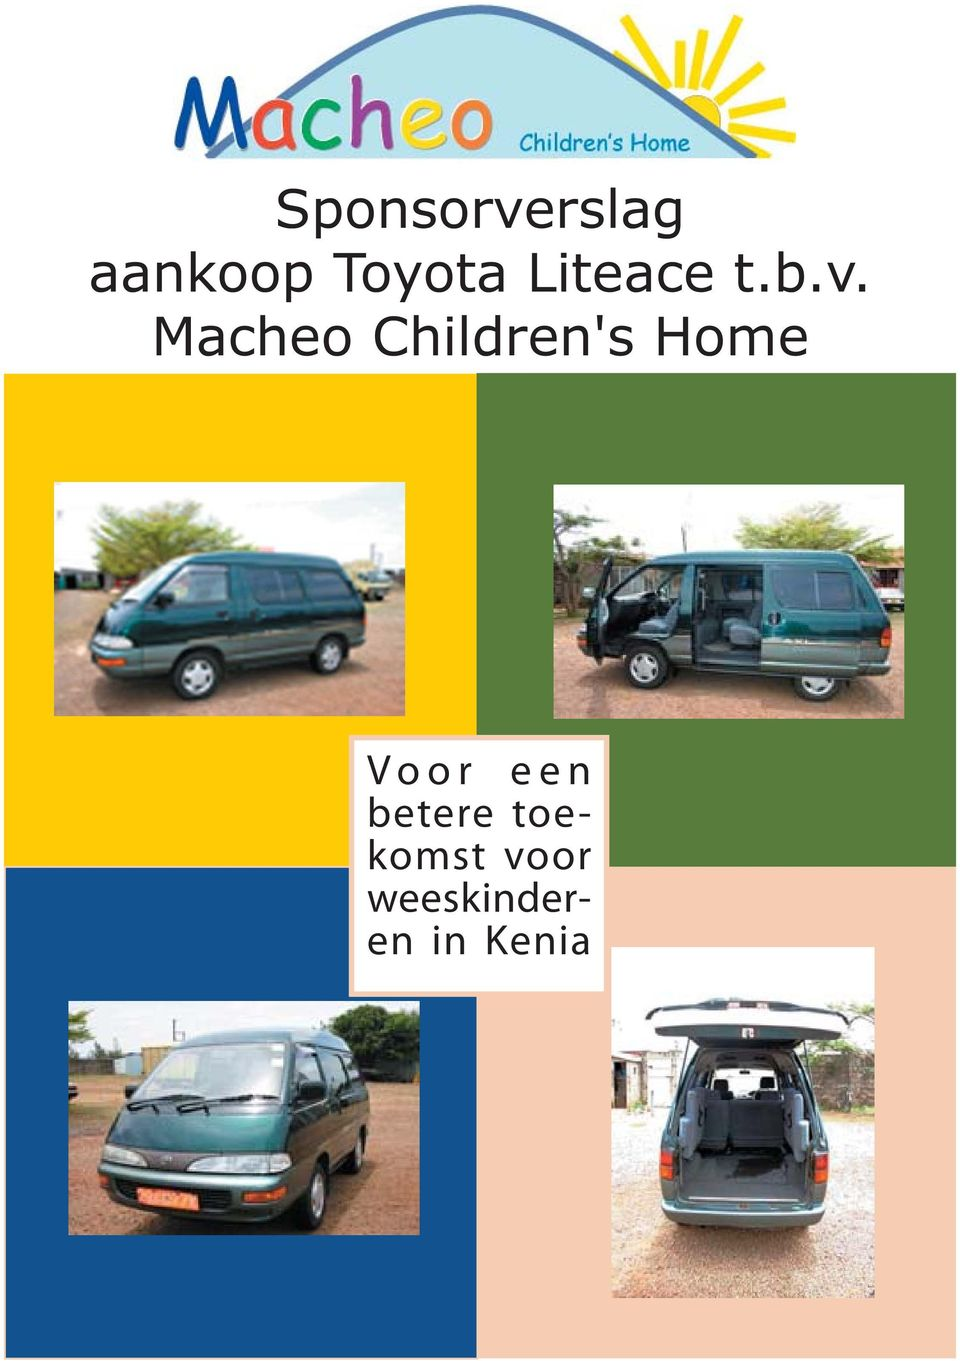 Macheo Children's Home Voor